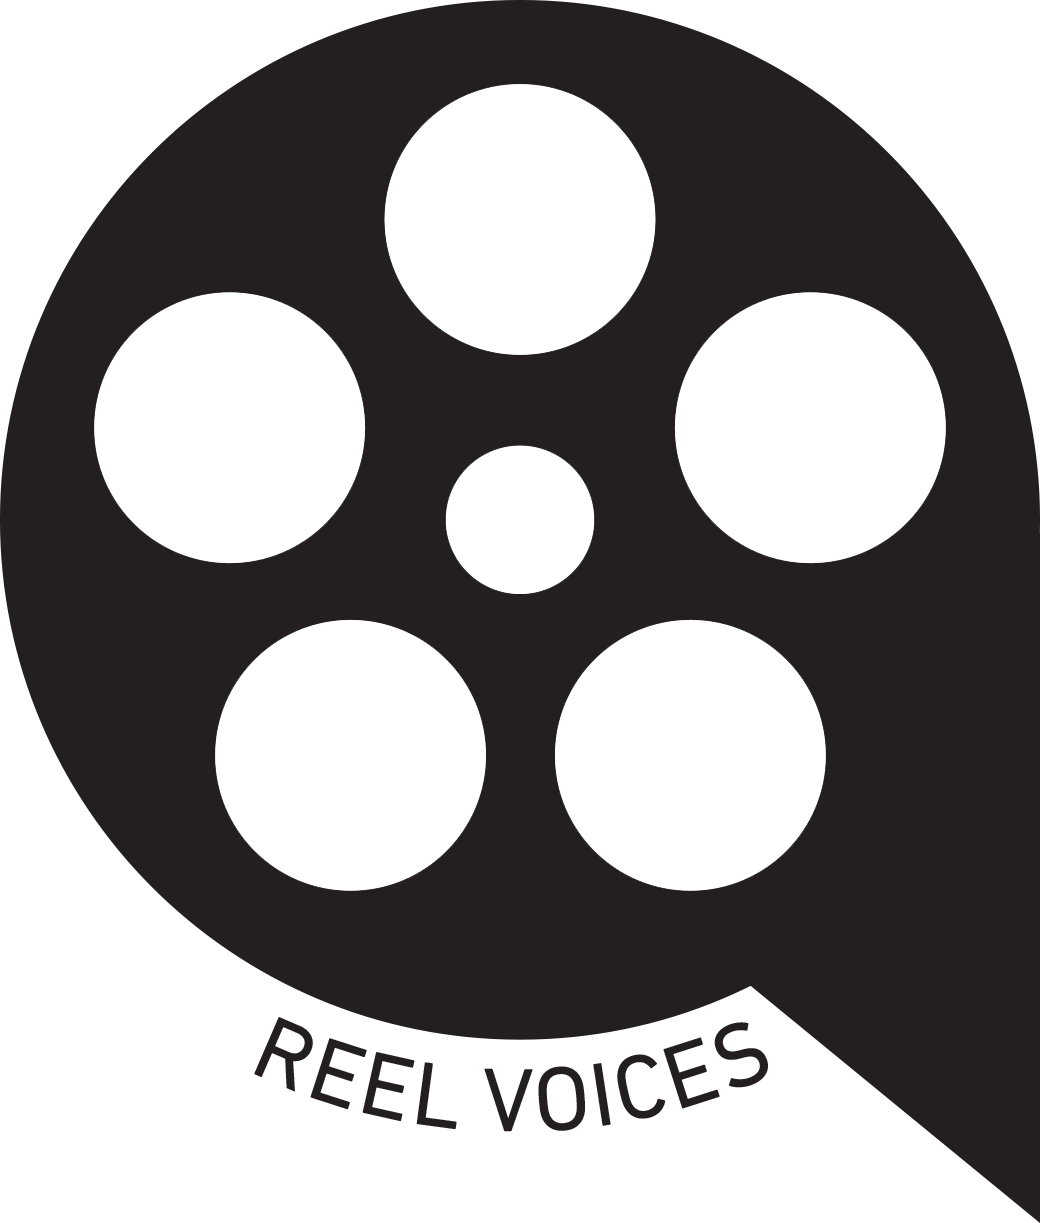 REEL VOICES